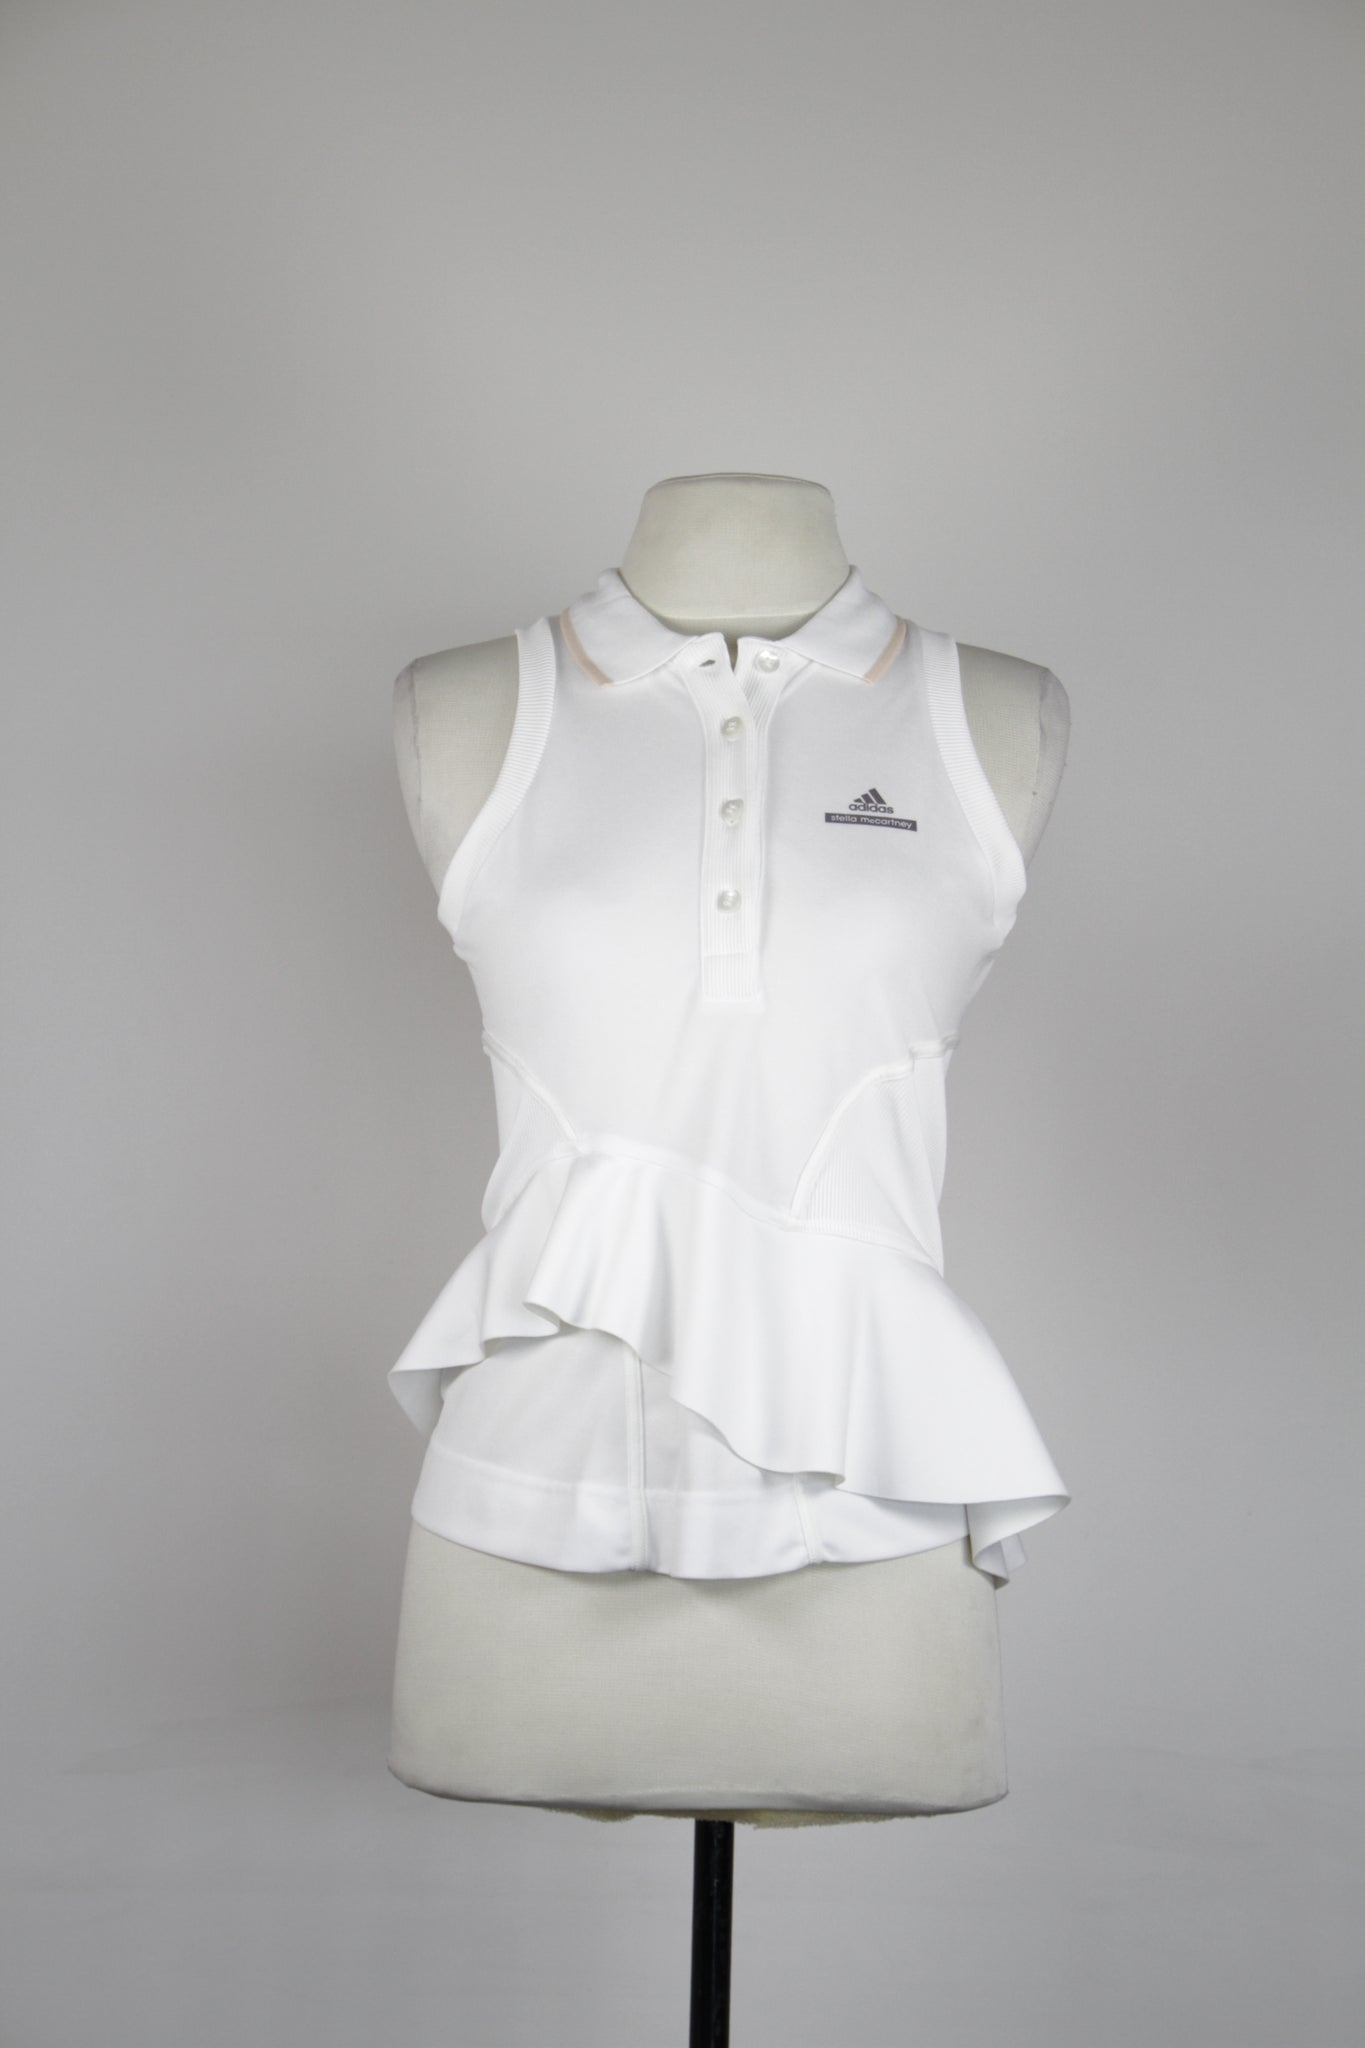 Adidas Stella McCartney White Sleeveless Top